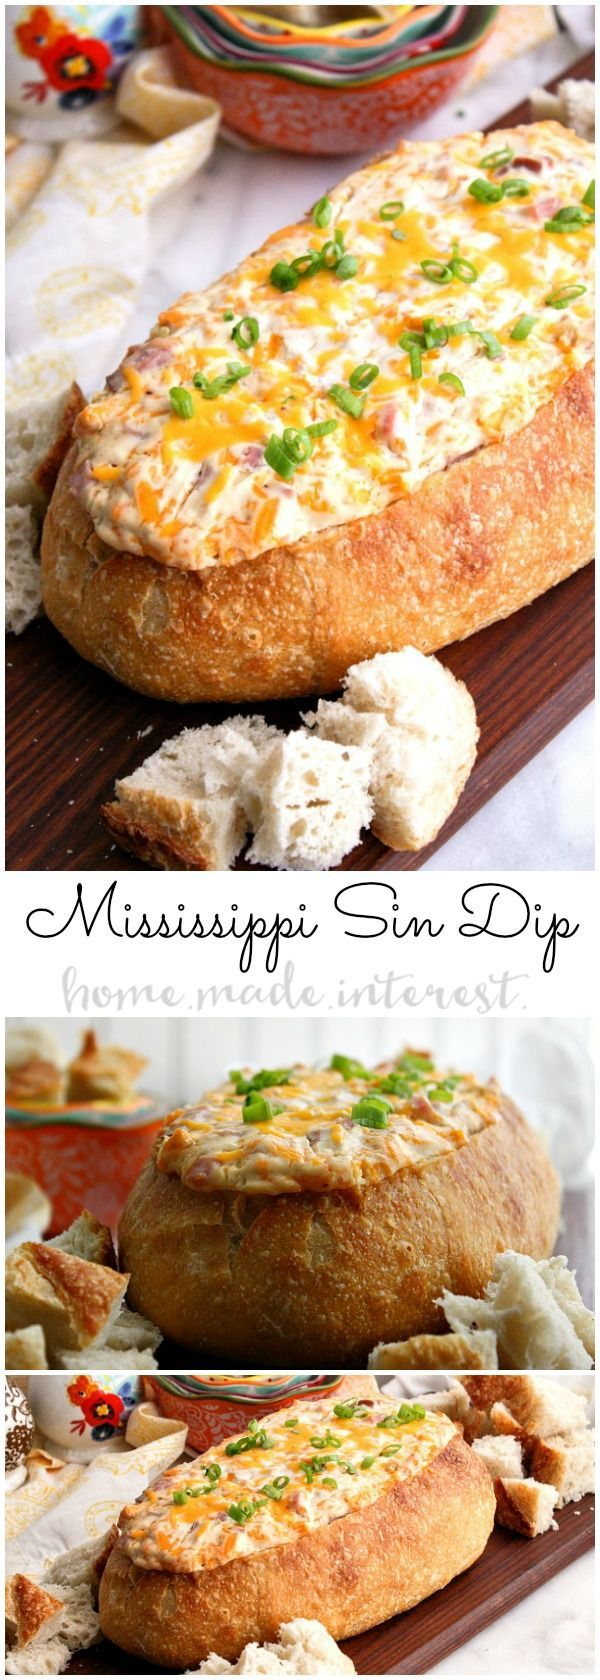 This decadent Mississippi Sin dip is an easy appetizer made with cheese and ham mixed together and baked inside a loaf of French bread until it is ooey gooey. The perfect game day appetizer or holiday party appetizer!